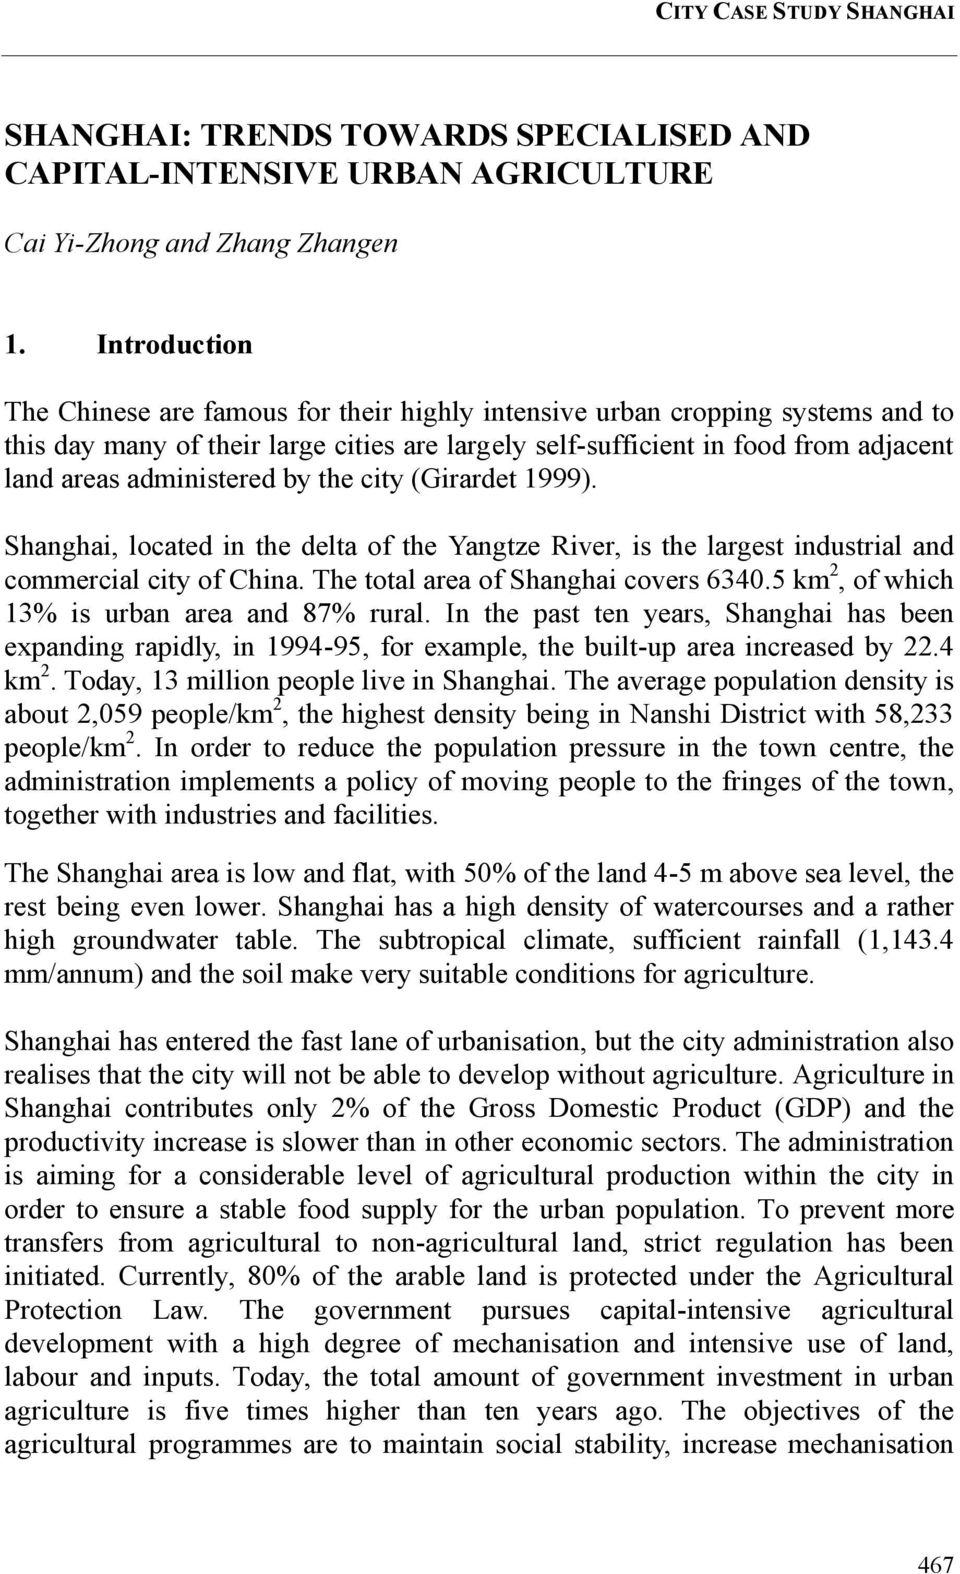 administered by the city (Girardet 1999). Shanghai, located in the delta of the Yangtze River, is the largest industrial and commercial city of China. The total area of Shanghai covers 6340.